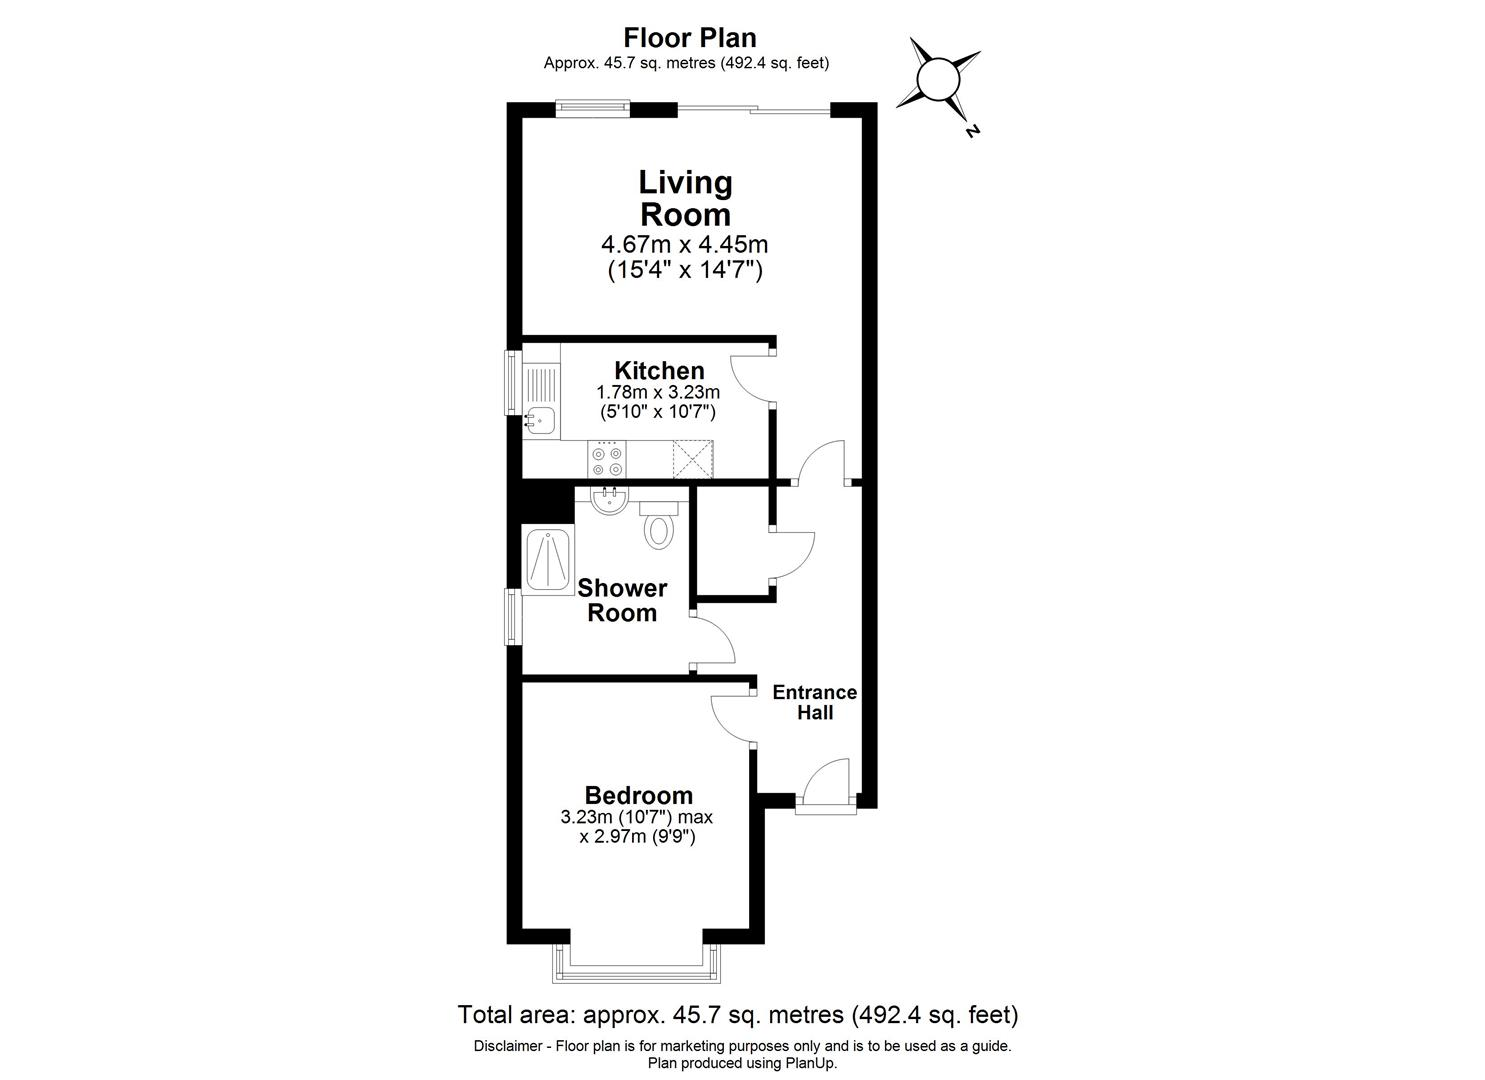 18-Emerton-Garth - floorplan.jpg